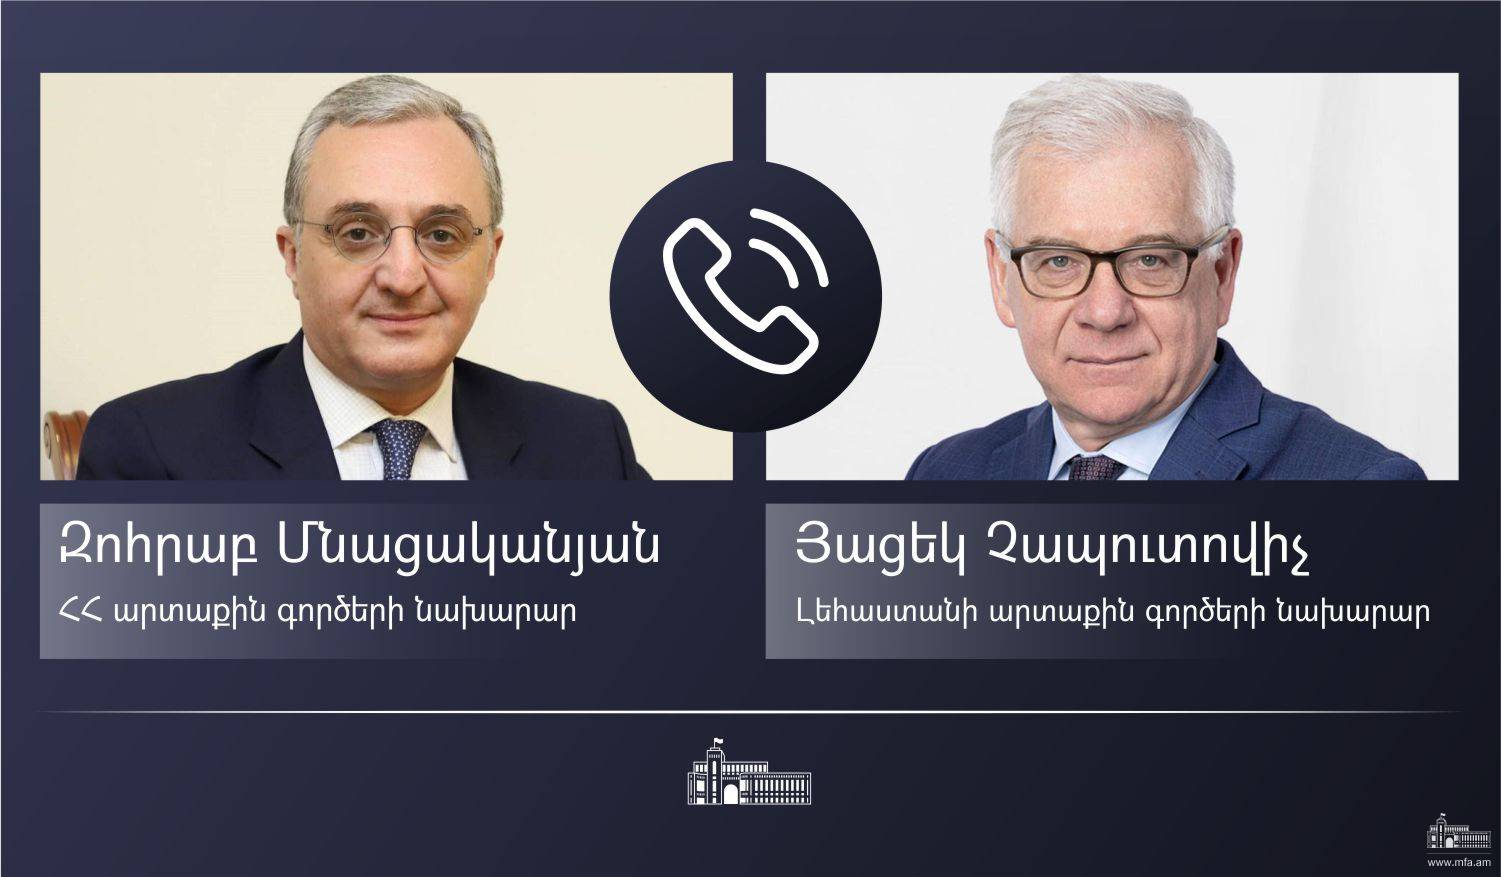 Foreign Minister Zohrab Mnatsakanyan's phone conversation with Foreign Minister of Poland Jacek Czaputowicz